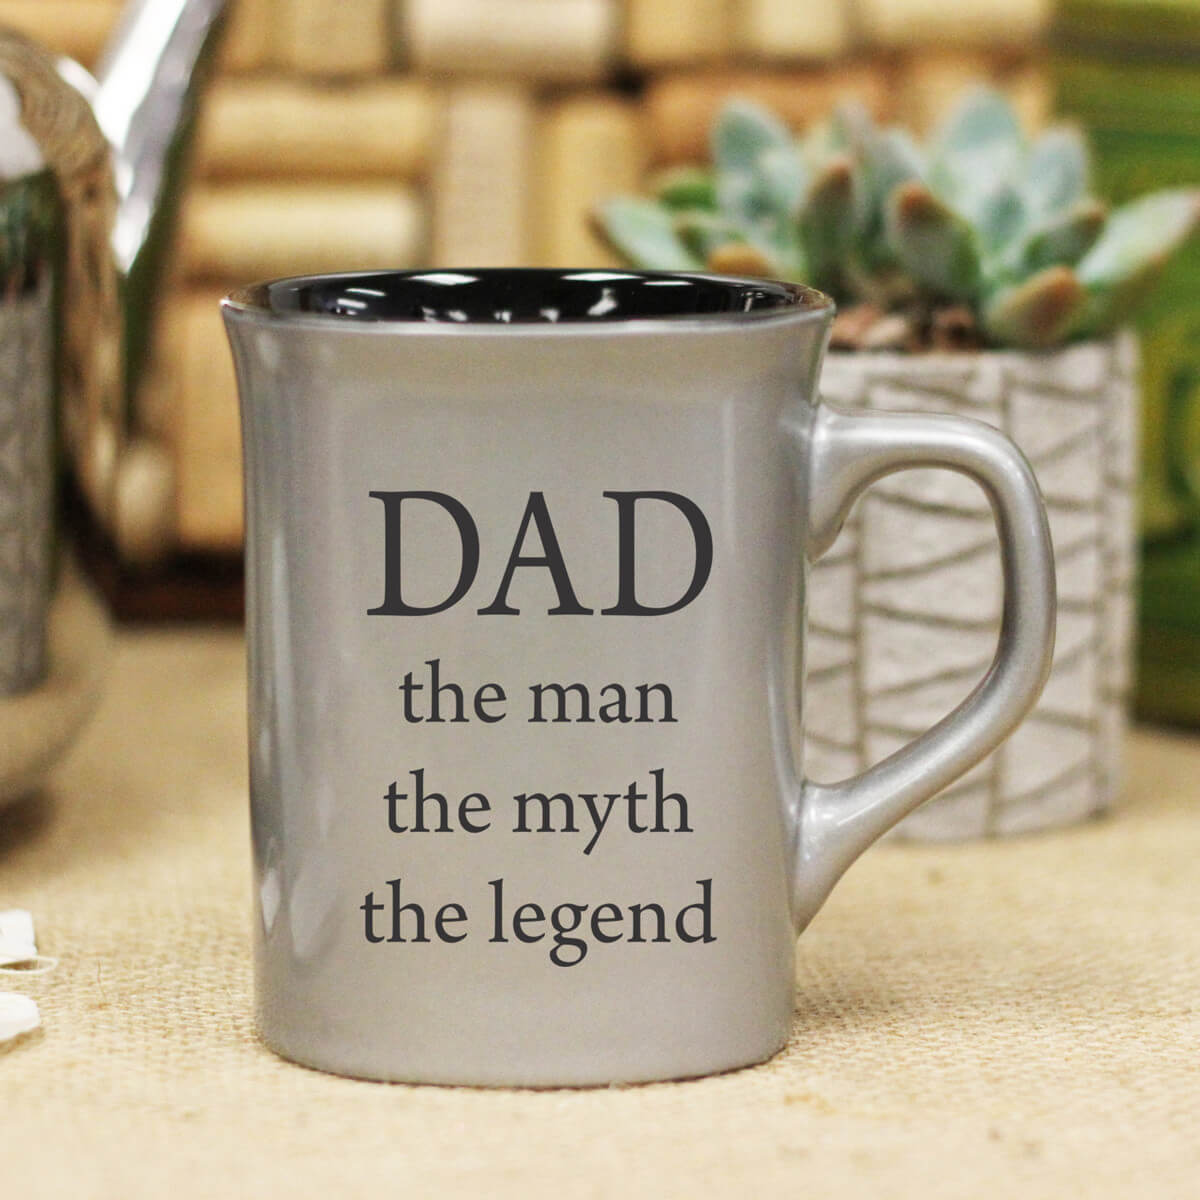 Gift your dad something special this father's day